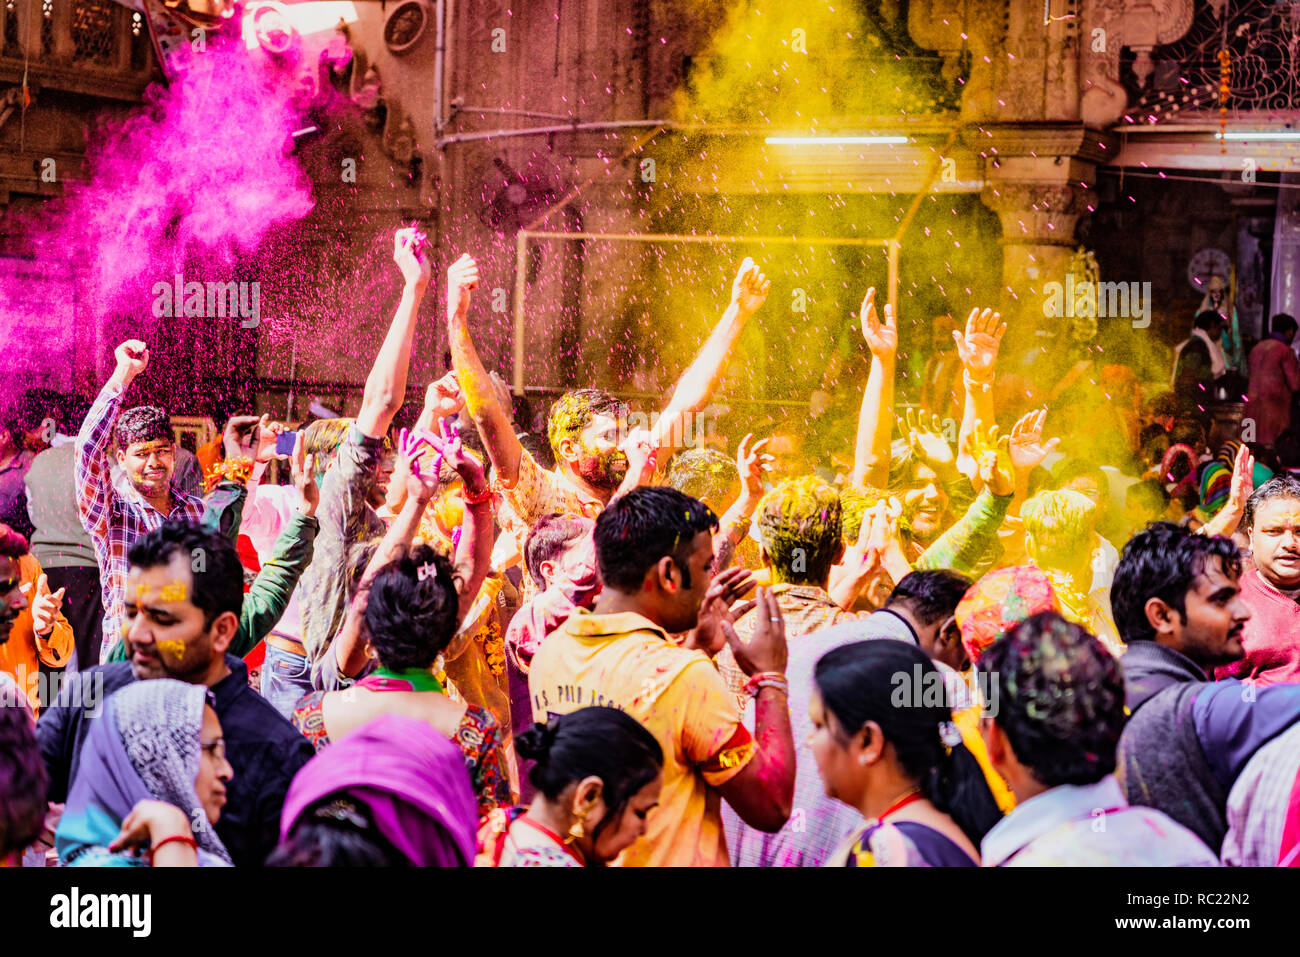 Barsana, India / February 23, 2018 - The crowd erupts in laughter and dance as powdered paint is thrown in the air during Holi festival - Stock Image